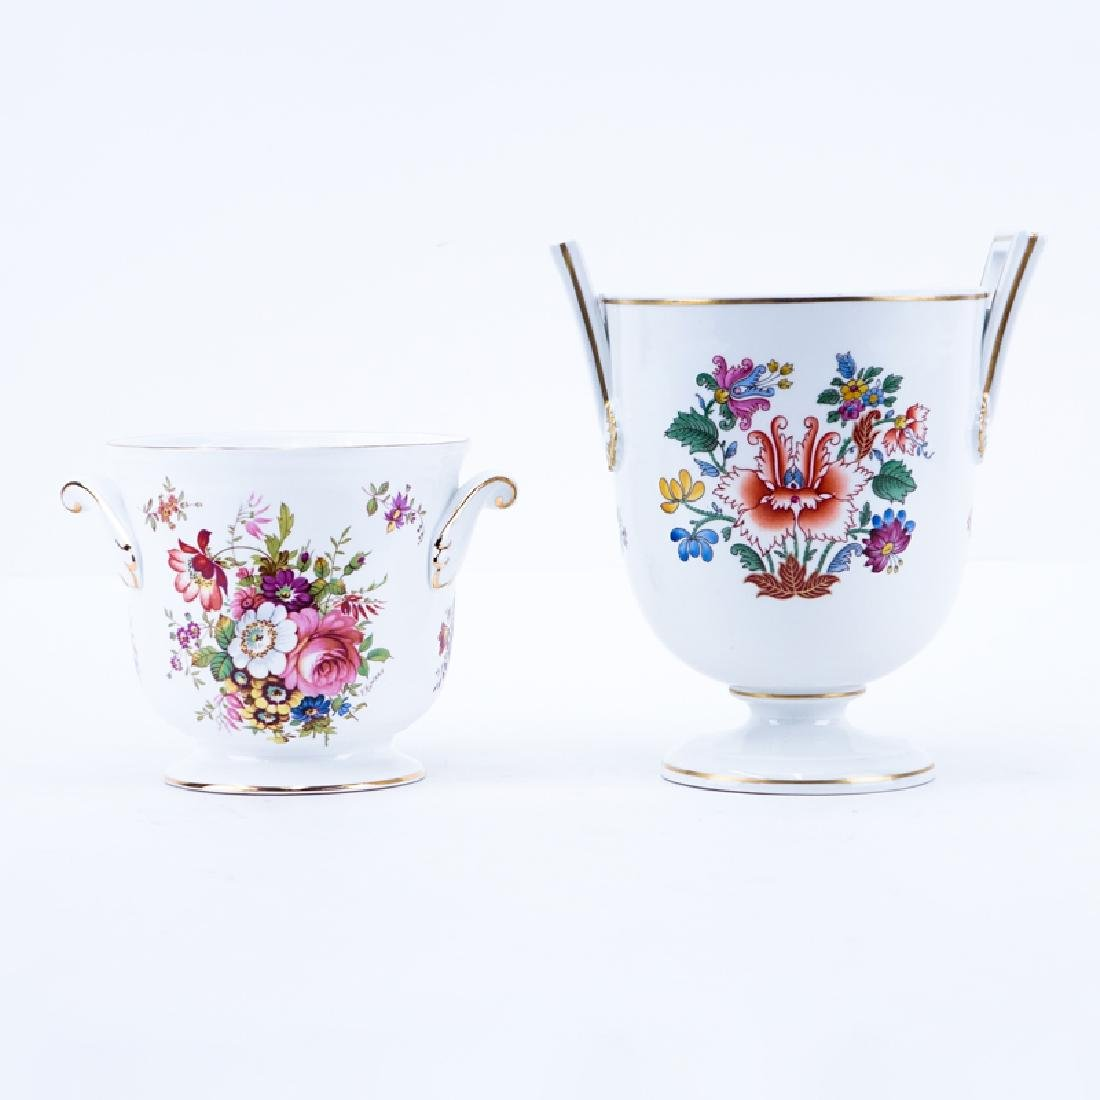 Two (2) Vintage Porcelain Cachepots by Richard Ginori